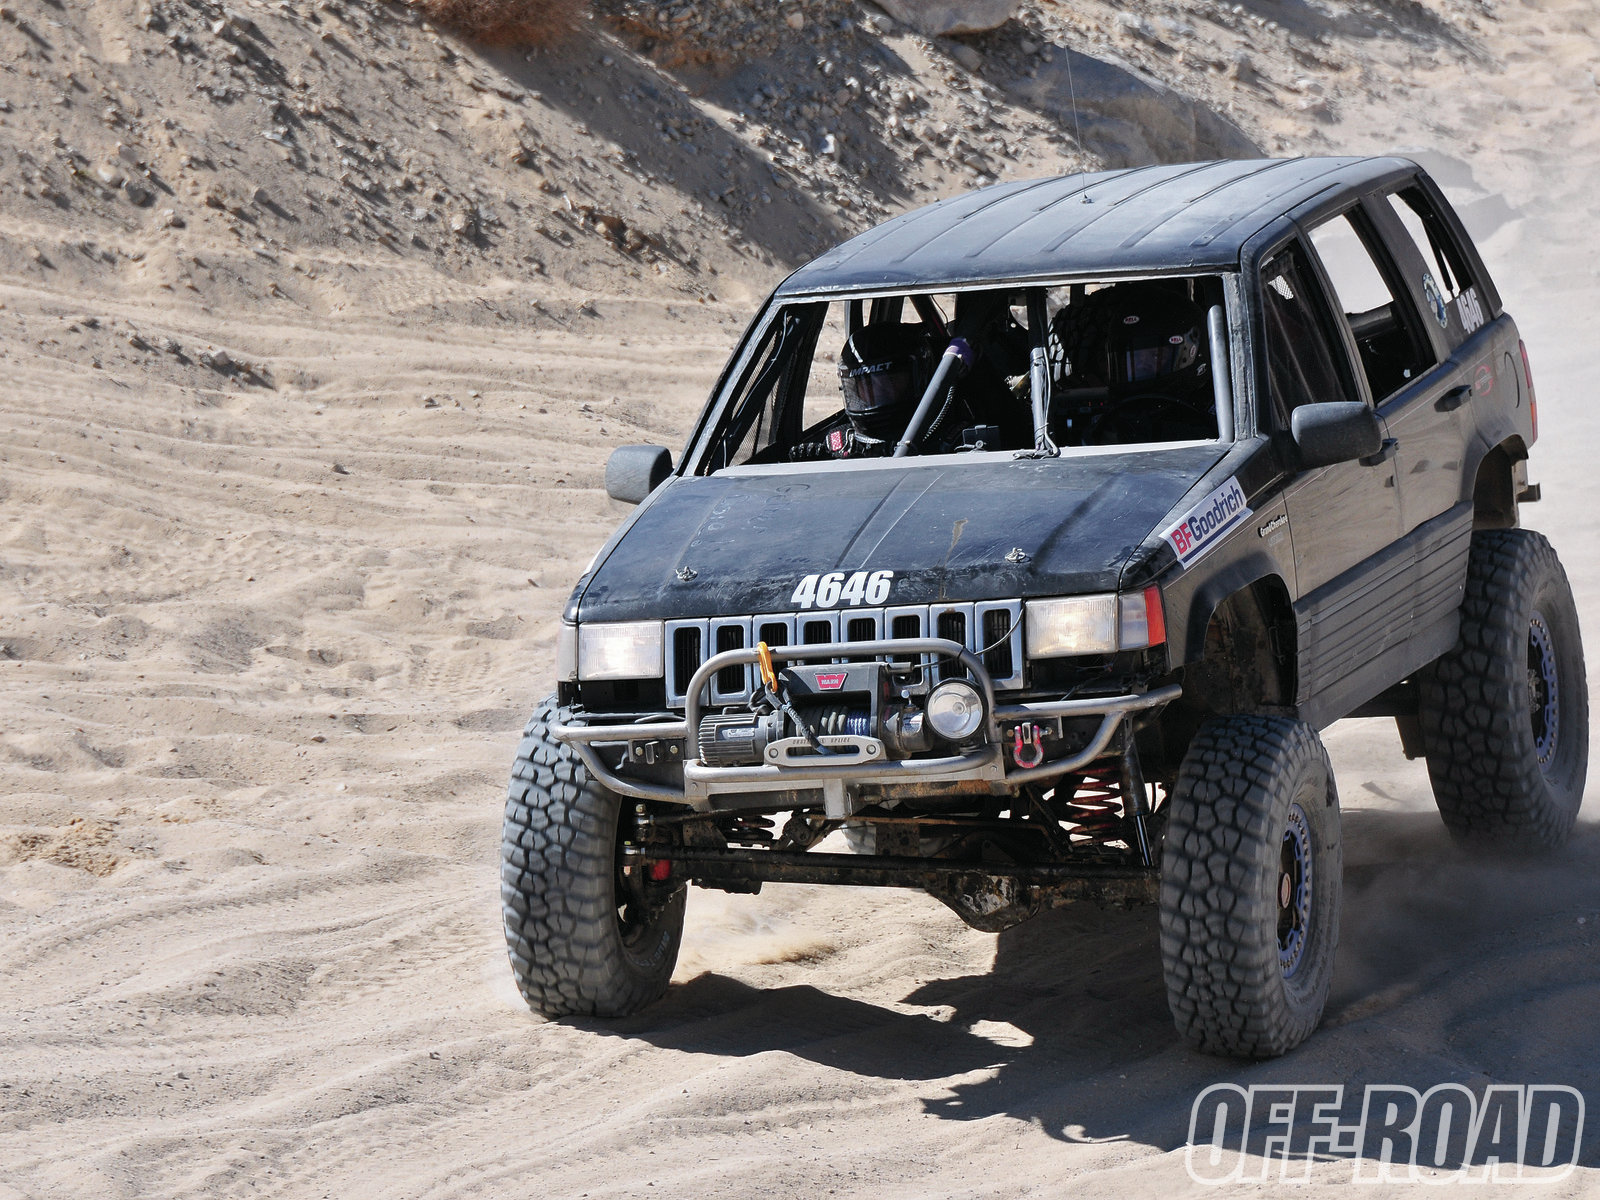 1206or 06+king of the hammers 2012+modified offroad jeep grand cherokee